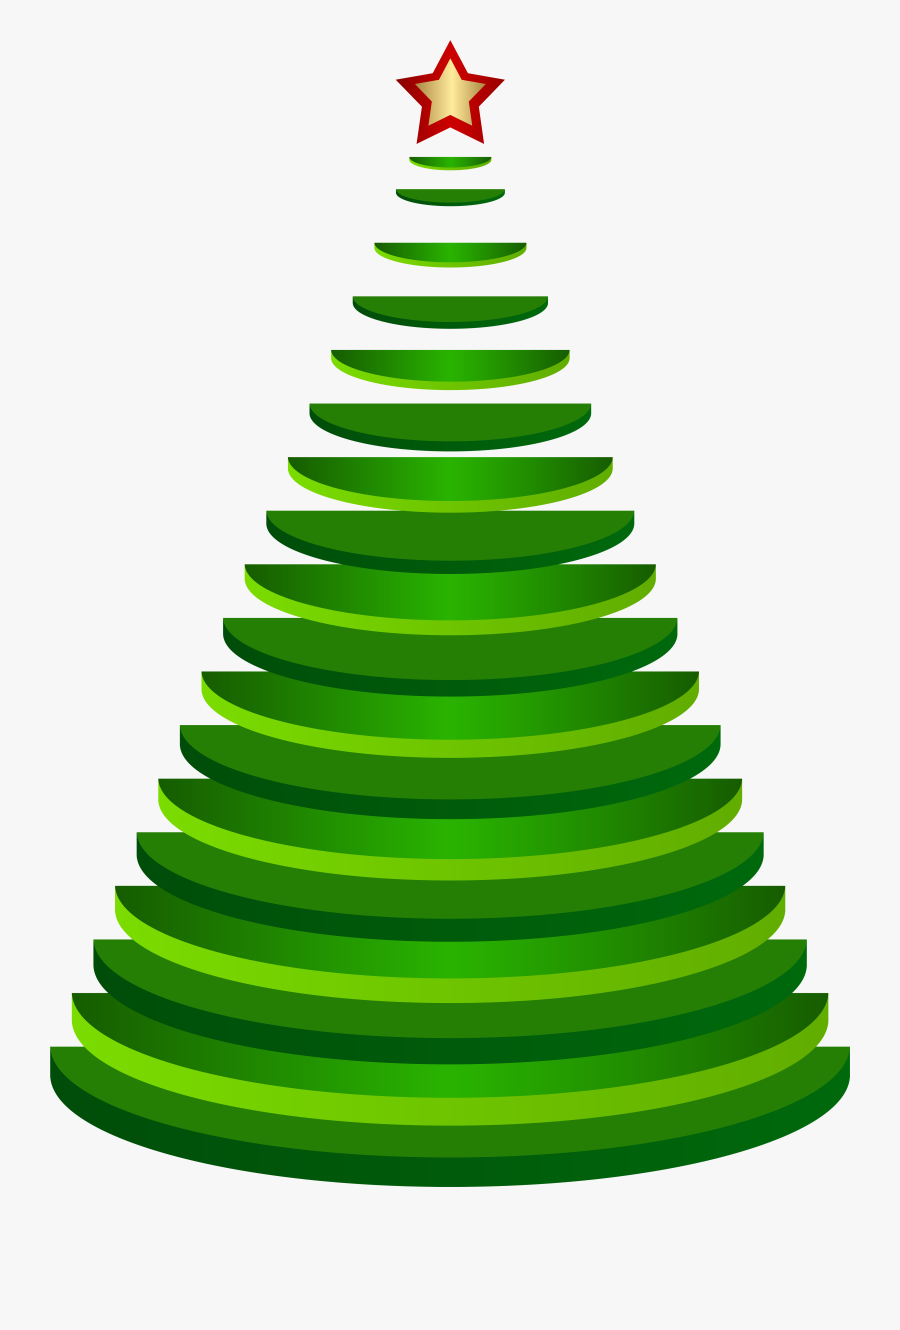 Decorative Christmas Tree Png - Christmas Tree, Transparent Clipart